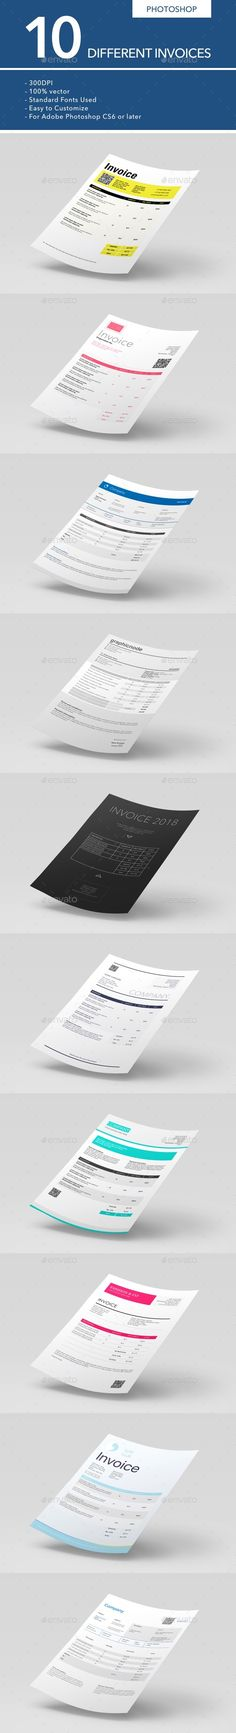 Clean Golf Tournament Proposal Proposals, Proposal templates and - indesign invoice template